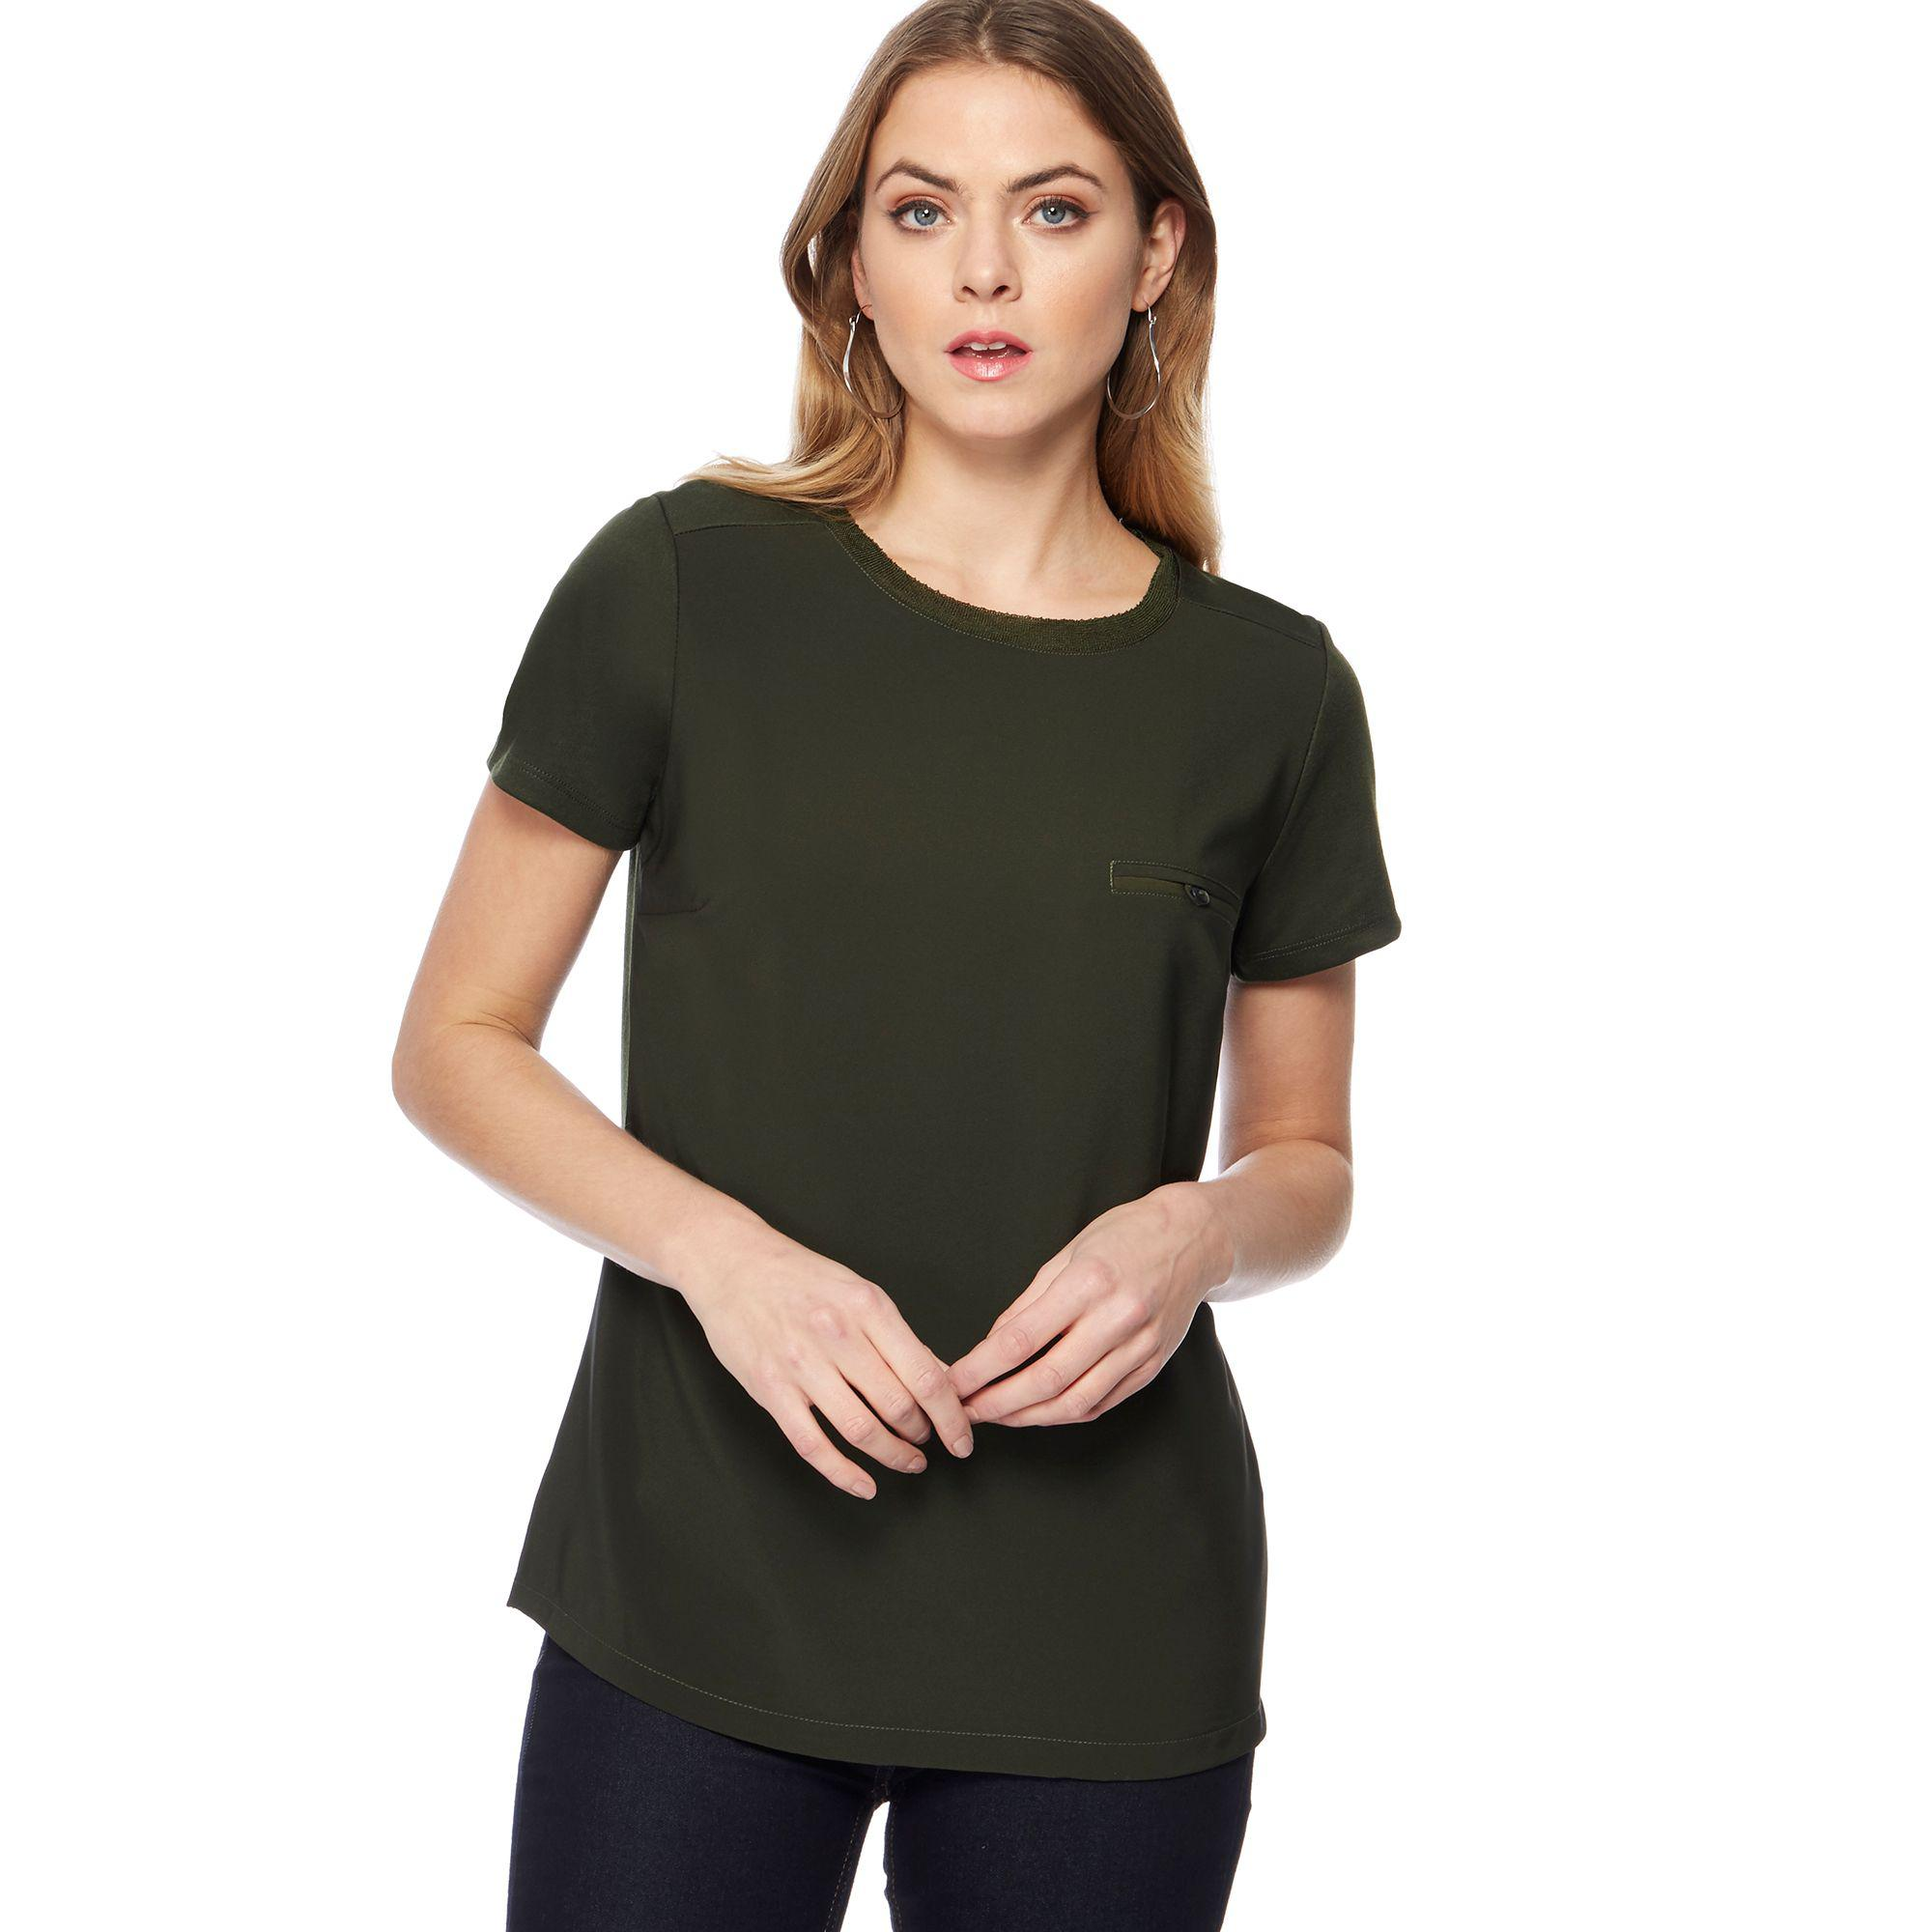 181b92e4069394 J By Jasper Conran Dark Green Jersey Chest Pocket T-shirt in Green ...